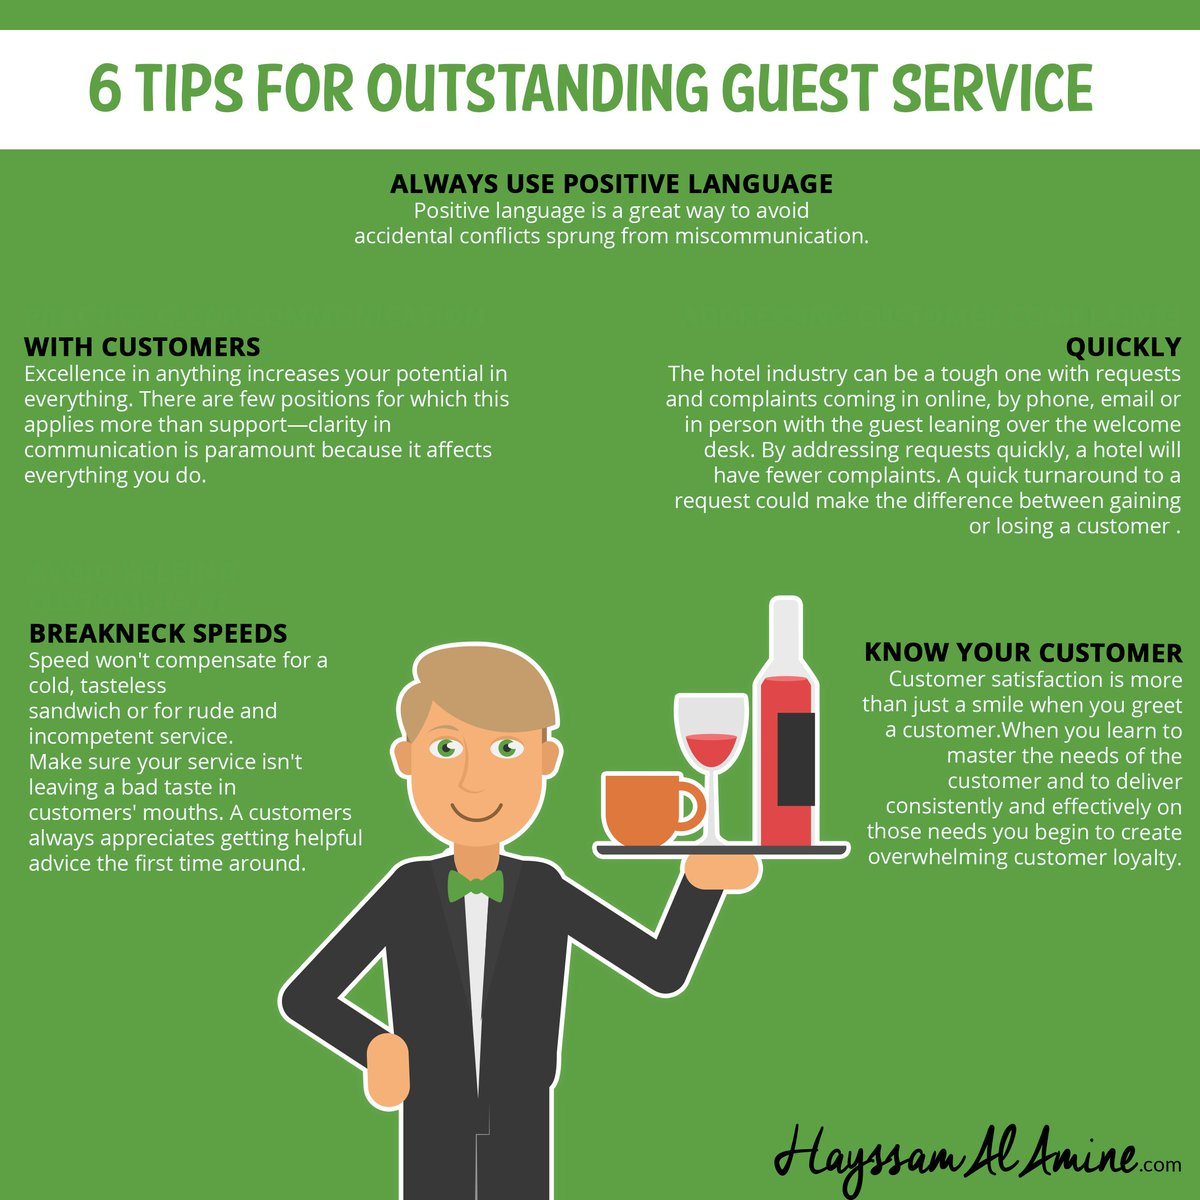 Hayssam On Twitter Giving You A Few Tips On How To Ace Guest